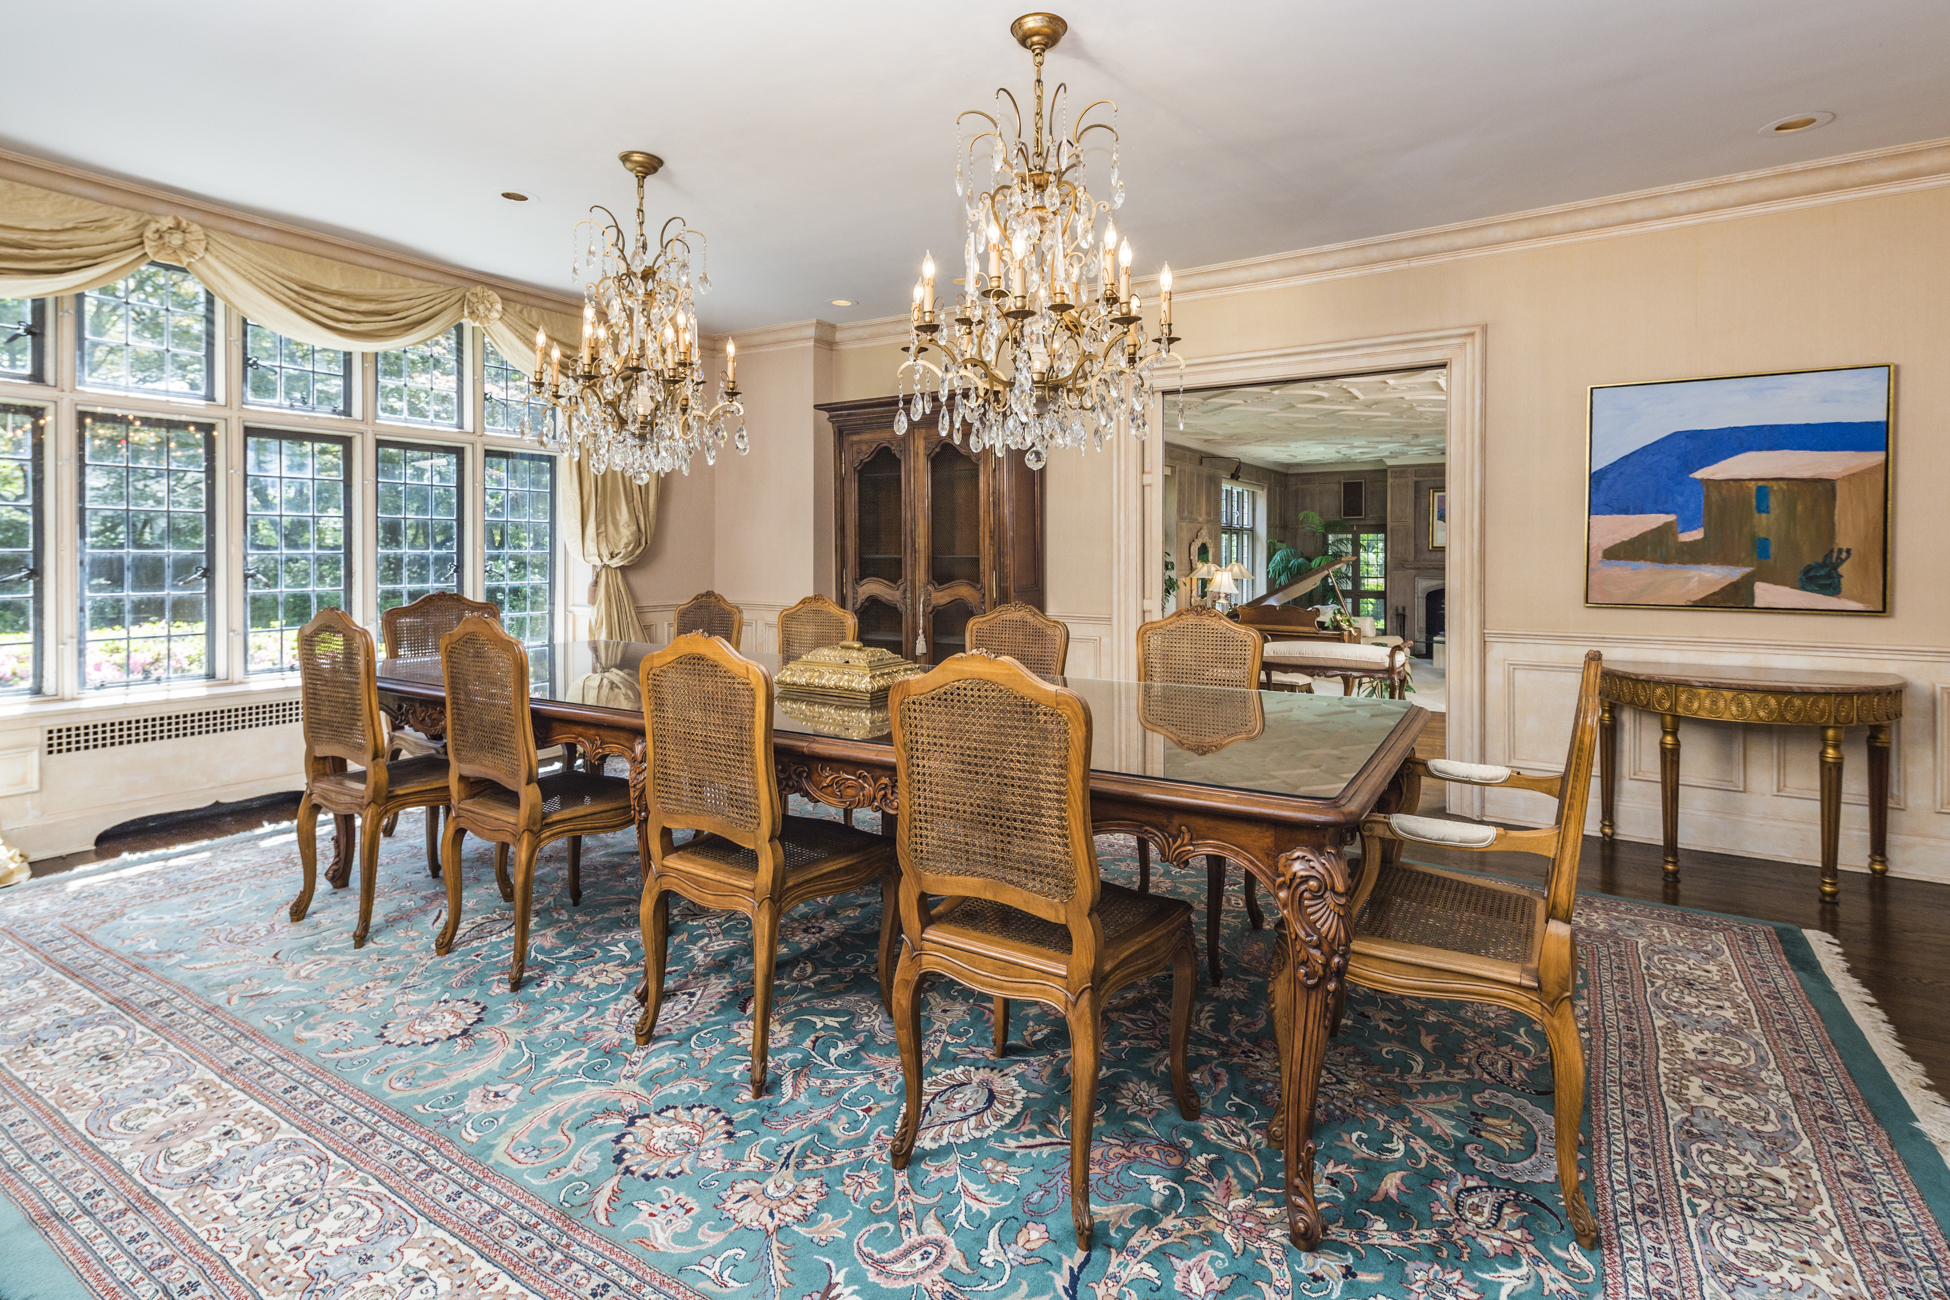 Additional photo for property listing at Normandy-inspired Manor in Princeton 114 Elm Road Princeton, Nueva Jersey 08540 Estados Unidos